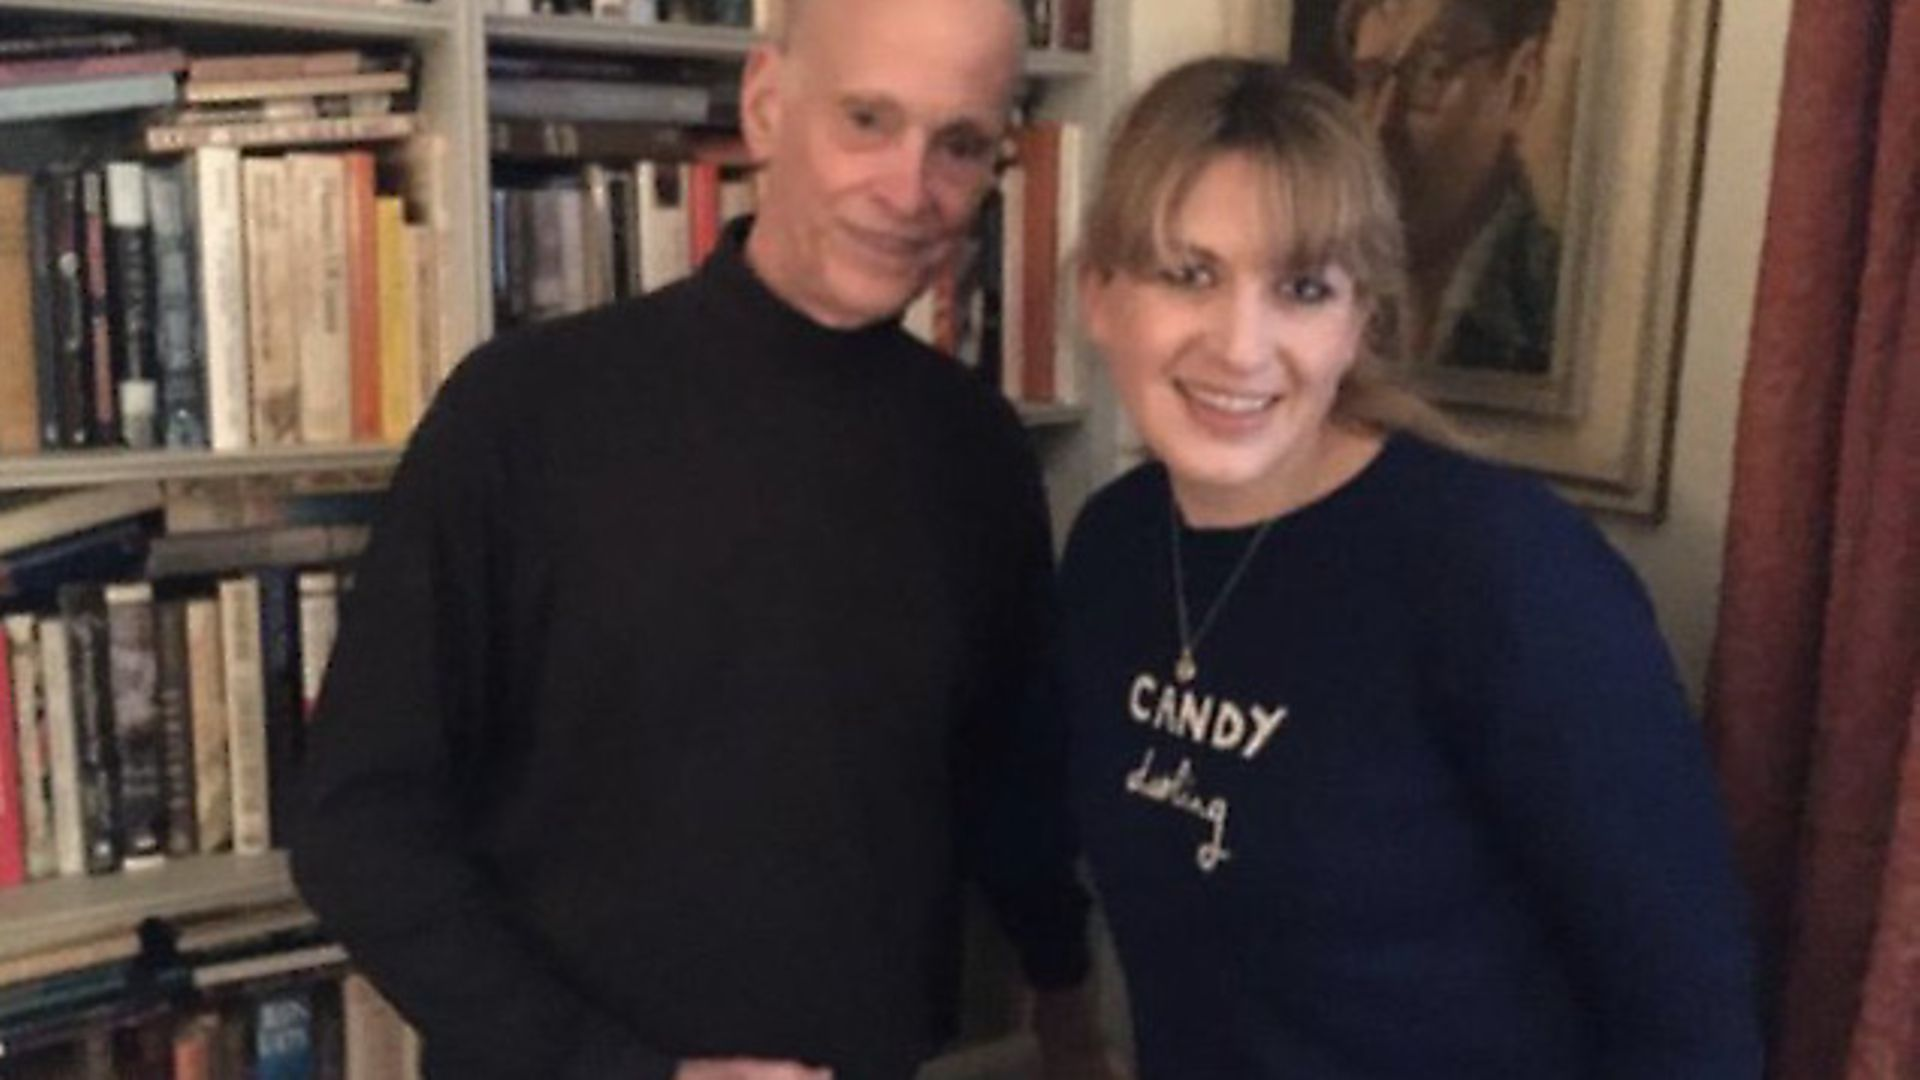 You're booked podcast presenter Daisy Buchanan with John Waters. Photo: Twitter - Credit: Archant